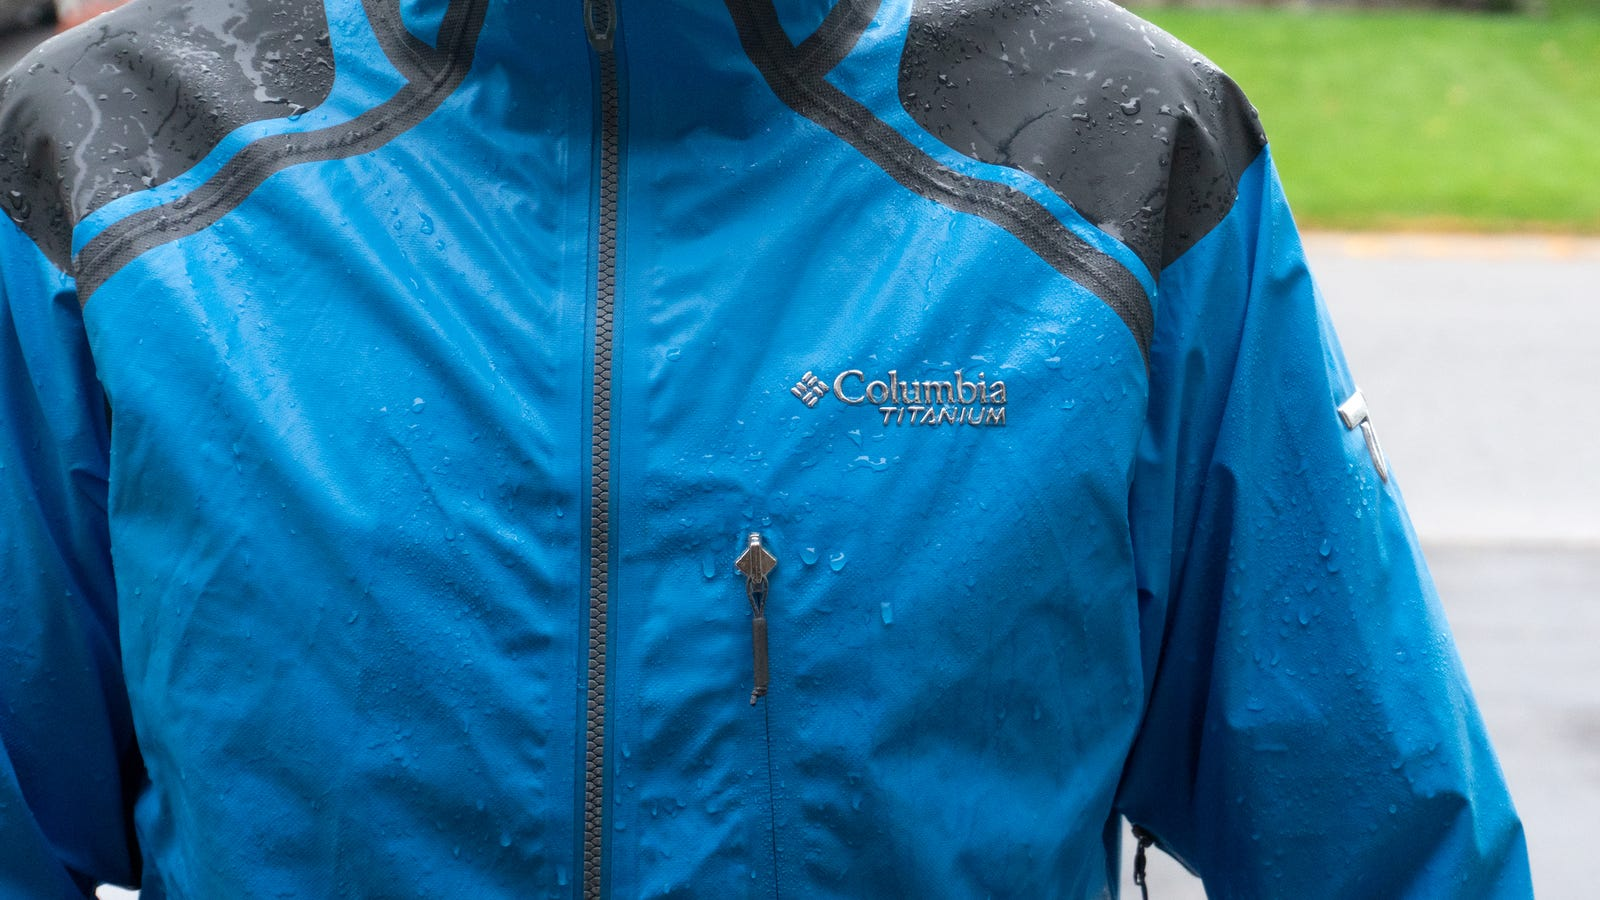 Columbia's OutDry Extreme material promised similar breathability as The North Face's Futurelight.